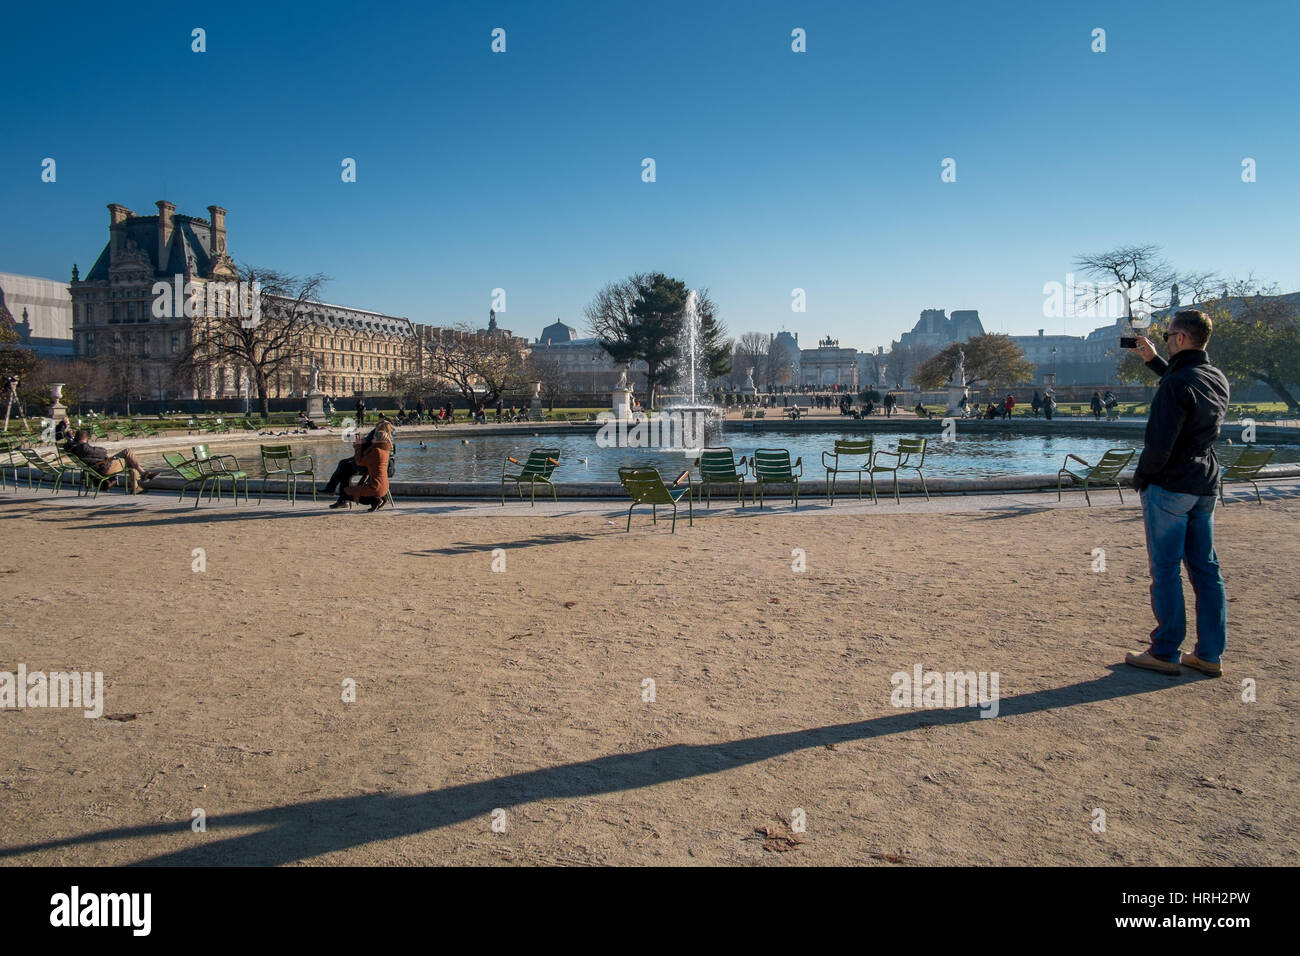 Man taking photograph at the Jardin des Tuileries overlooked by the Louvre museum, Paris, France. - Stock Image